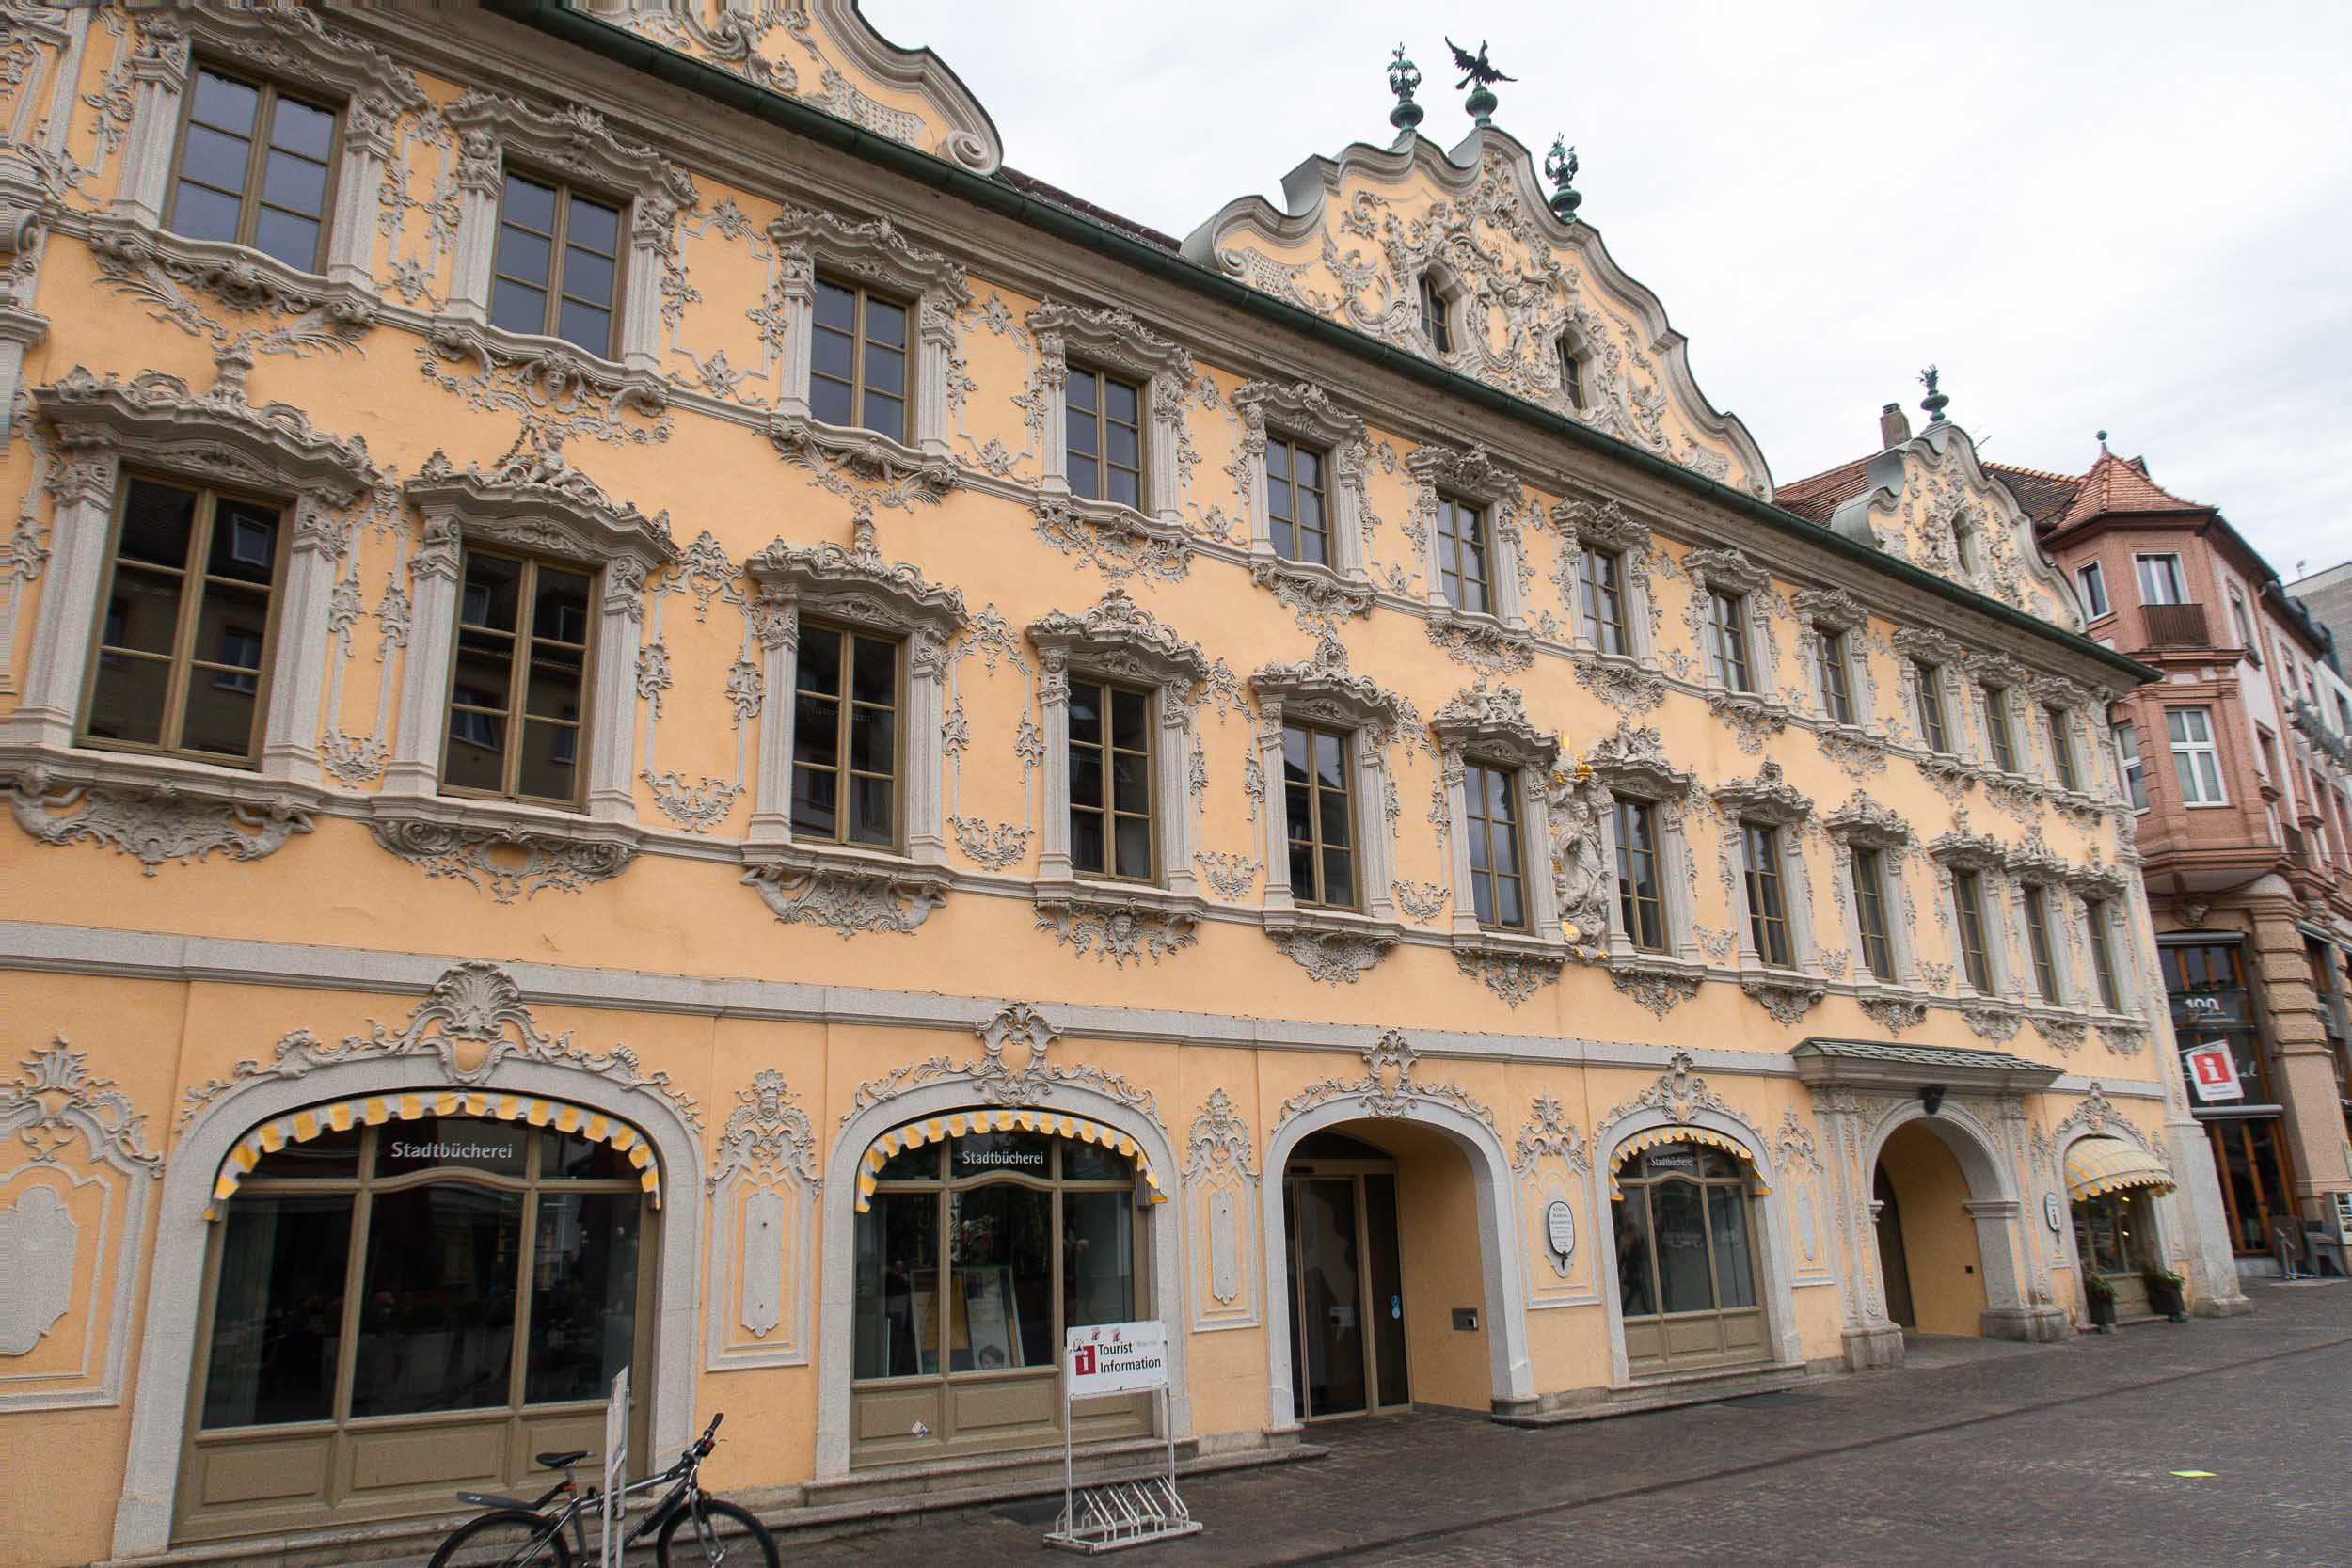 Everything you need to know about visiting the town of Würzburg in German Wine country.